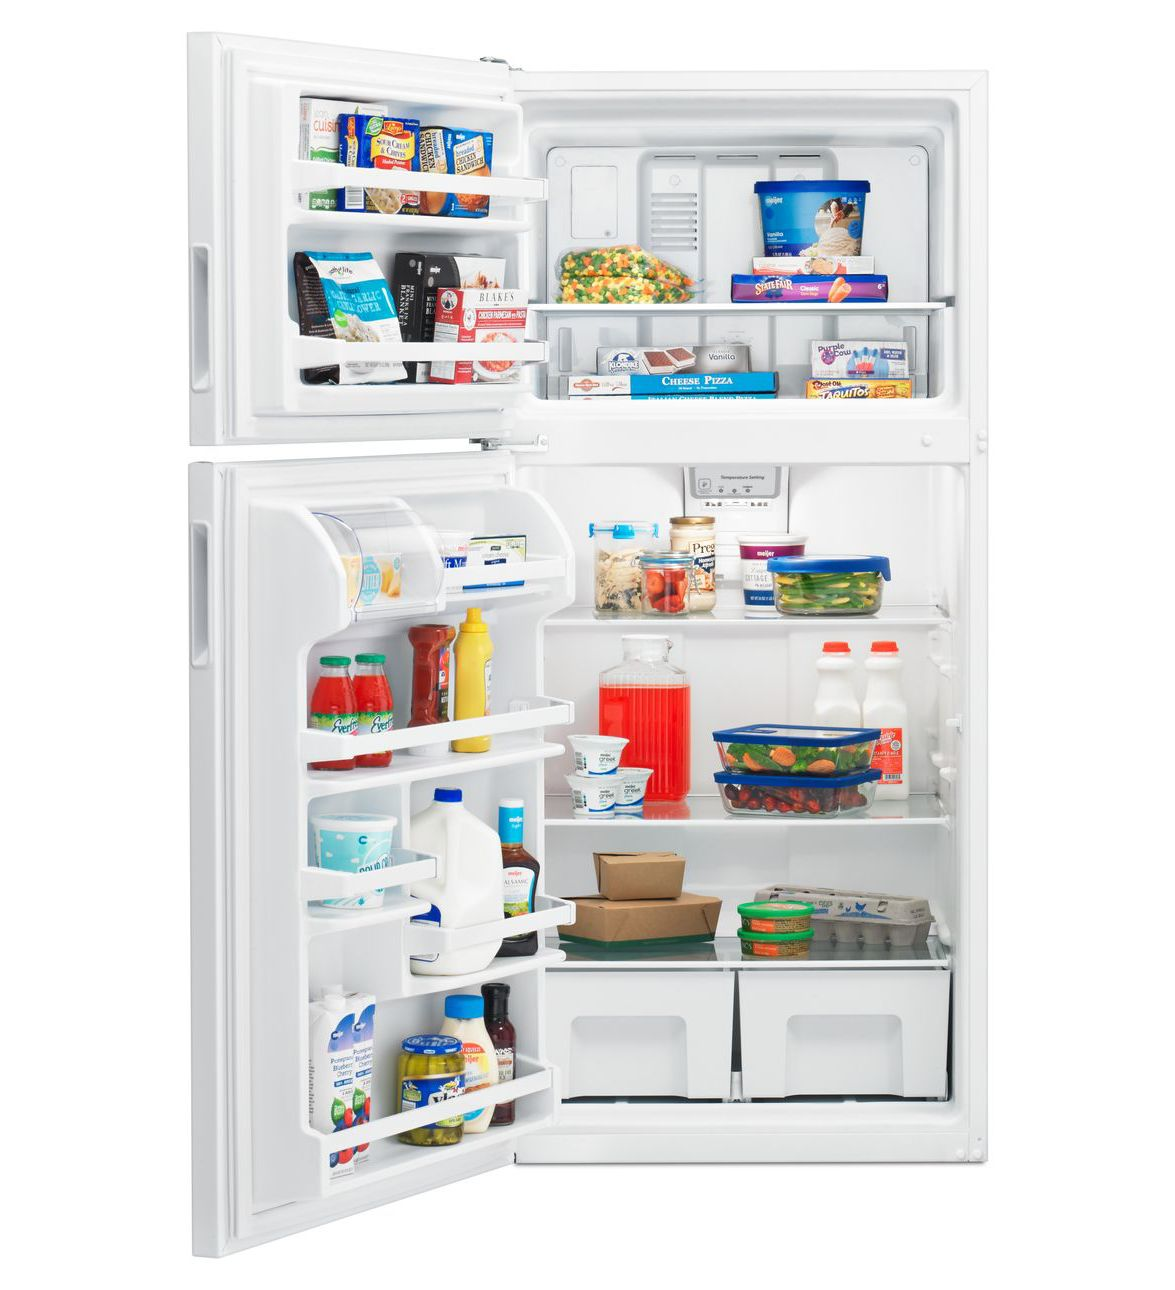 Amana® 30-inch Wide Top-Freezer Refrigerator with Glass Shelves – 18 cu  ft